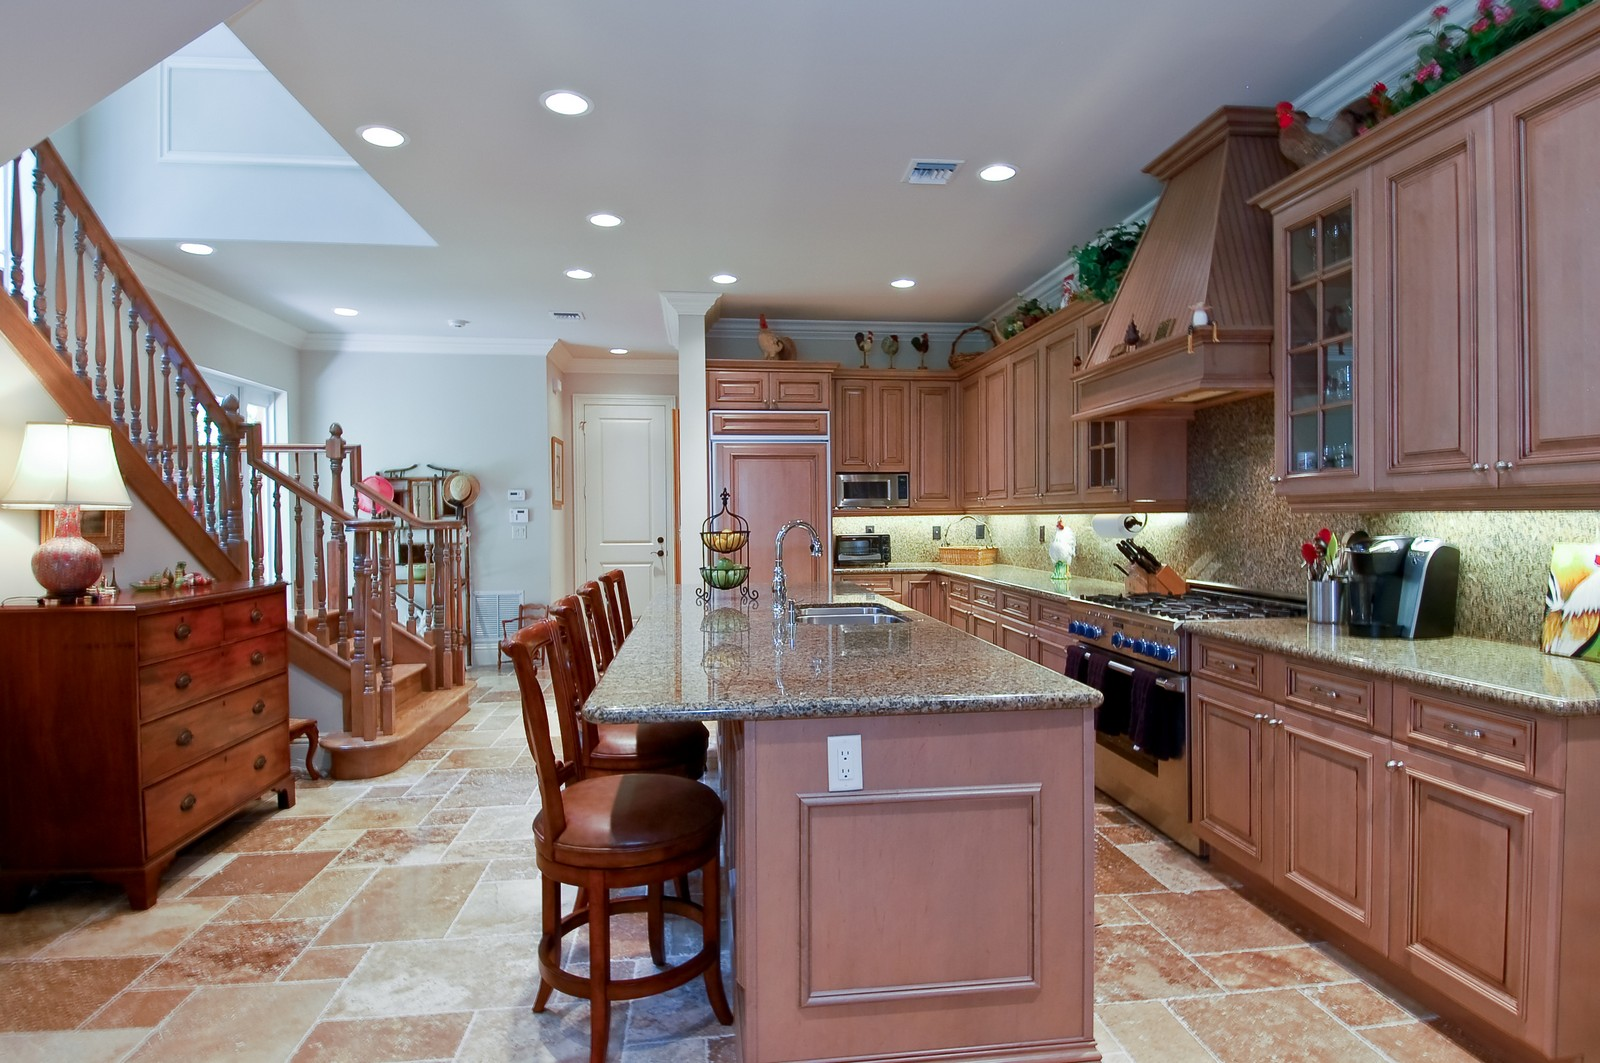 Real Estate Photography - 114 Venetian Dr, Delray Beach, FL, 33483 - Kitchen